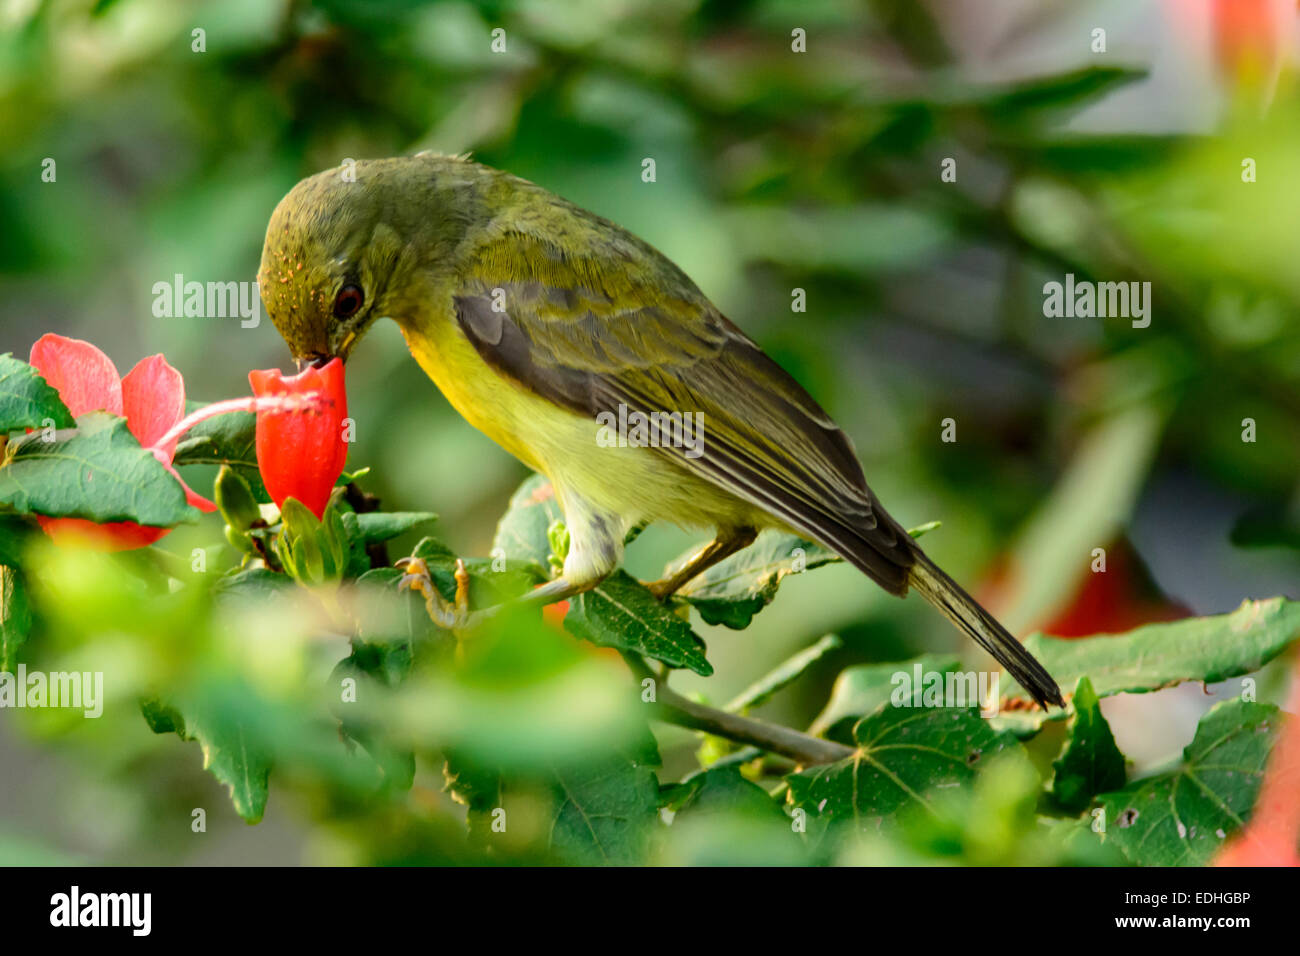 Female brown-throated sunbird feeding on nectar from a hibiscus flower. - Stock Image